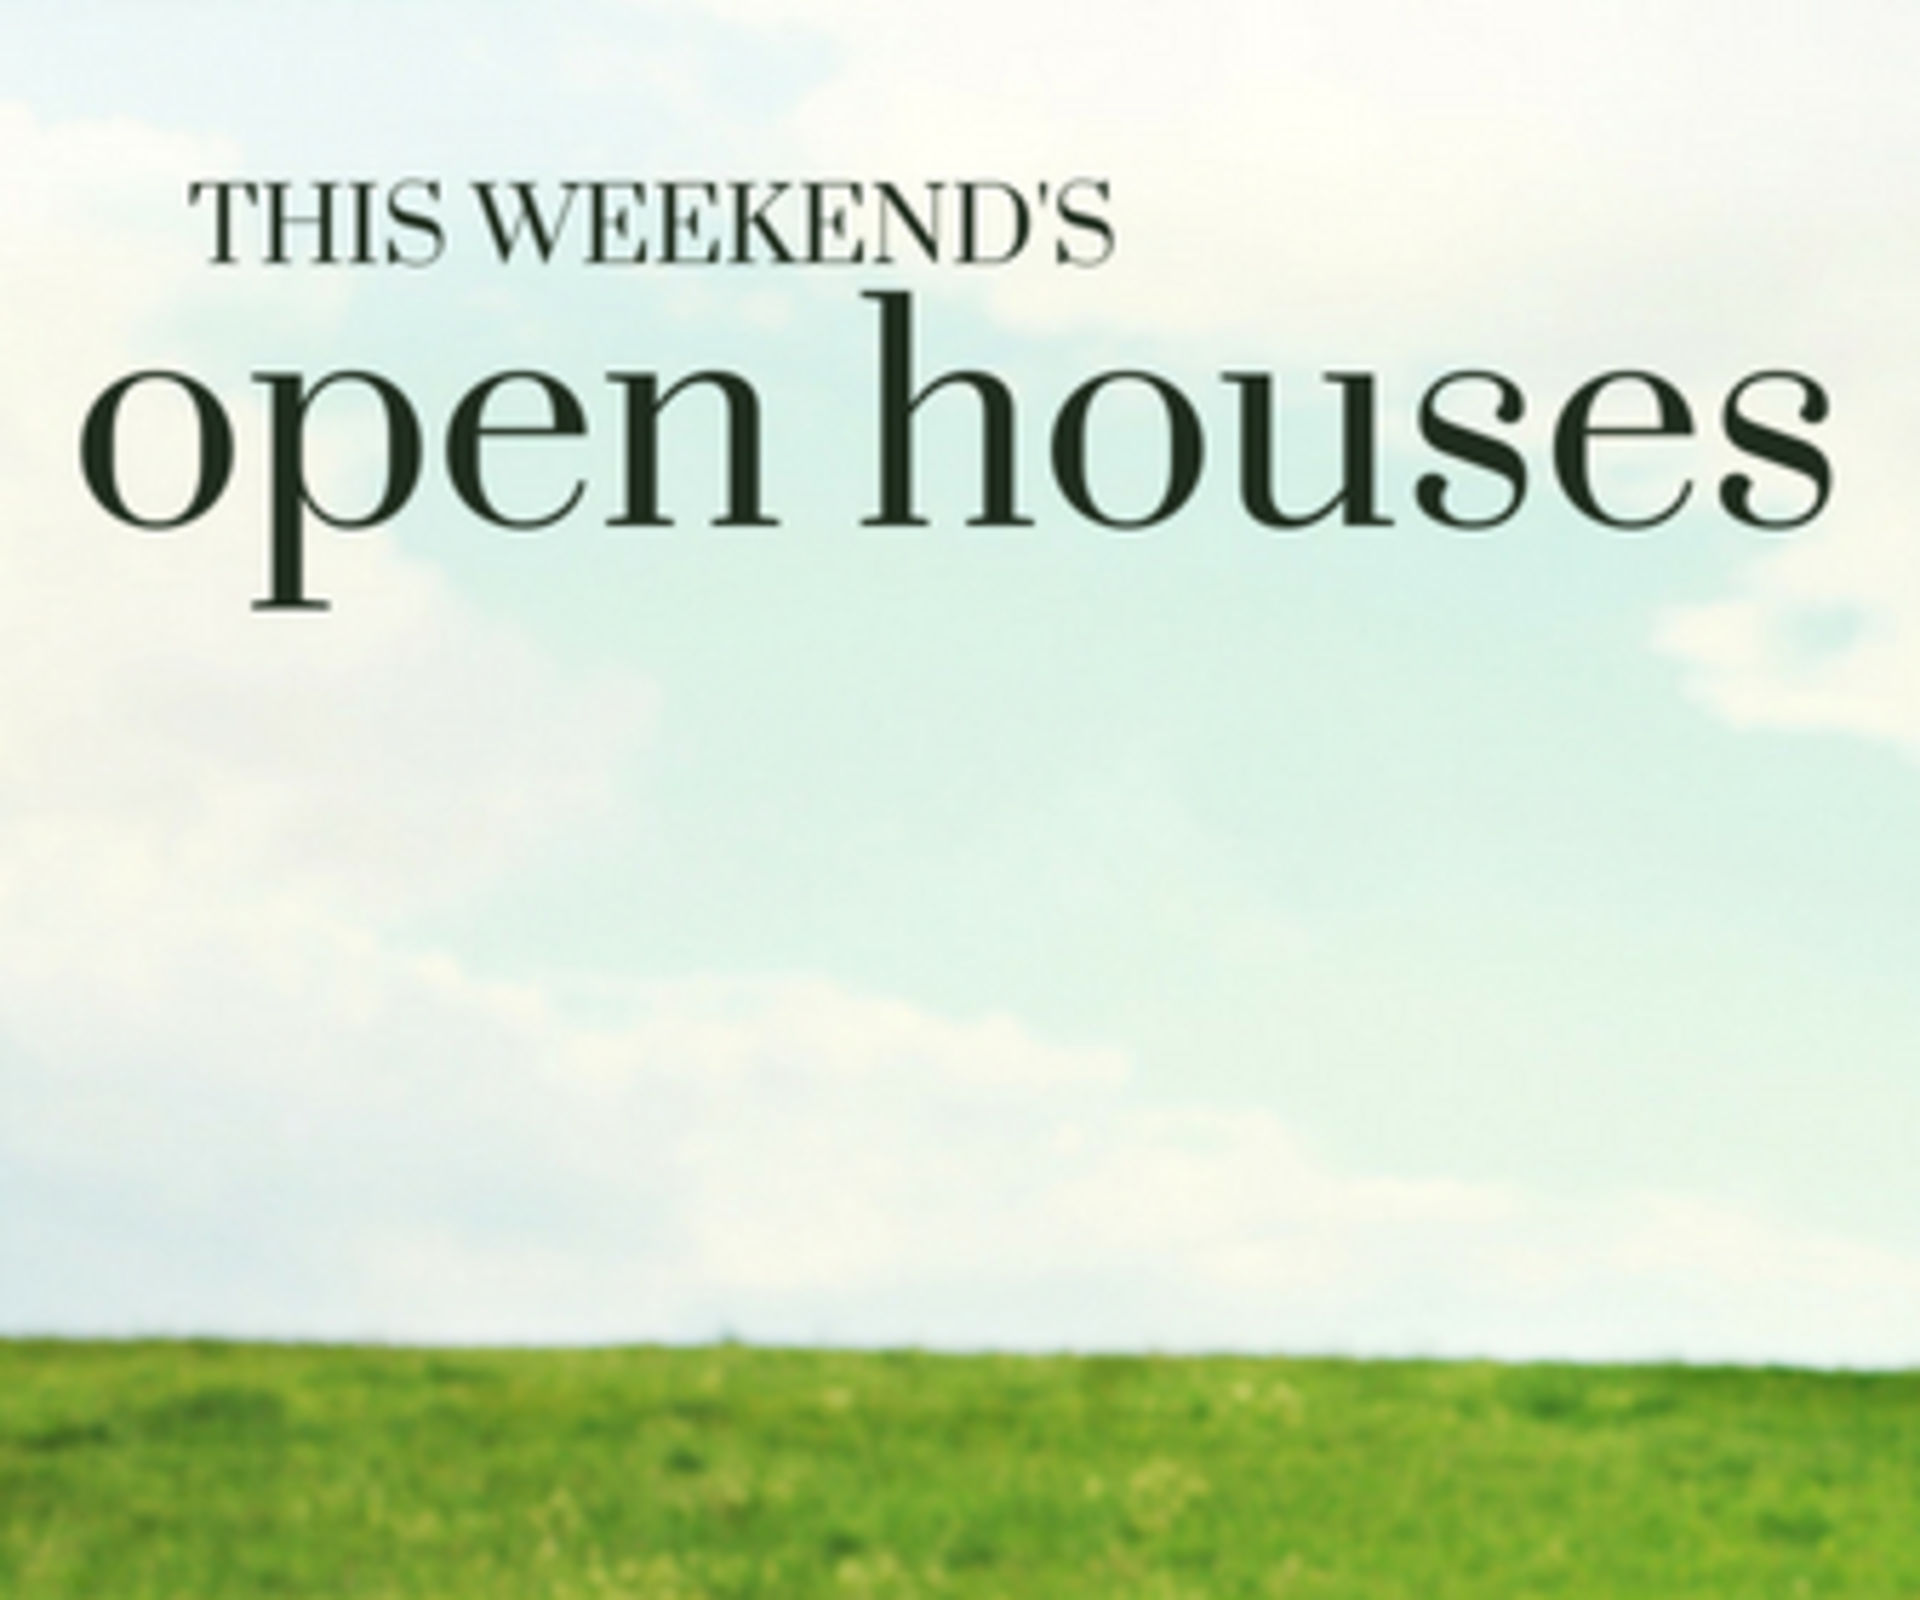 Lenexa and Leawood OPEN HOUSES this Weekend!